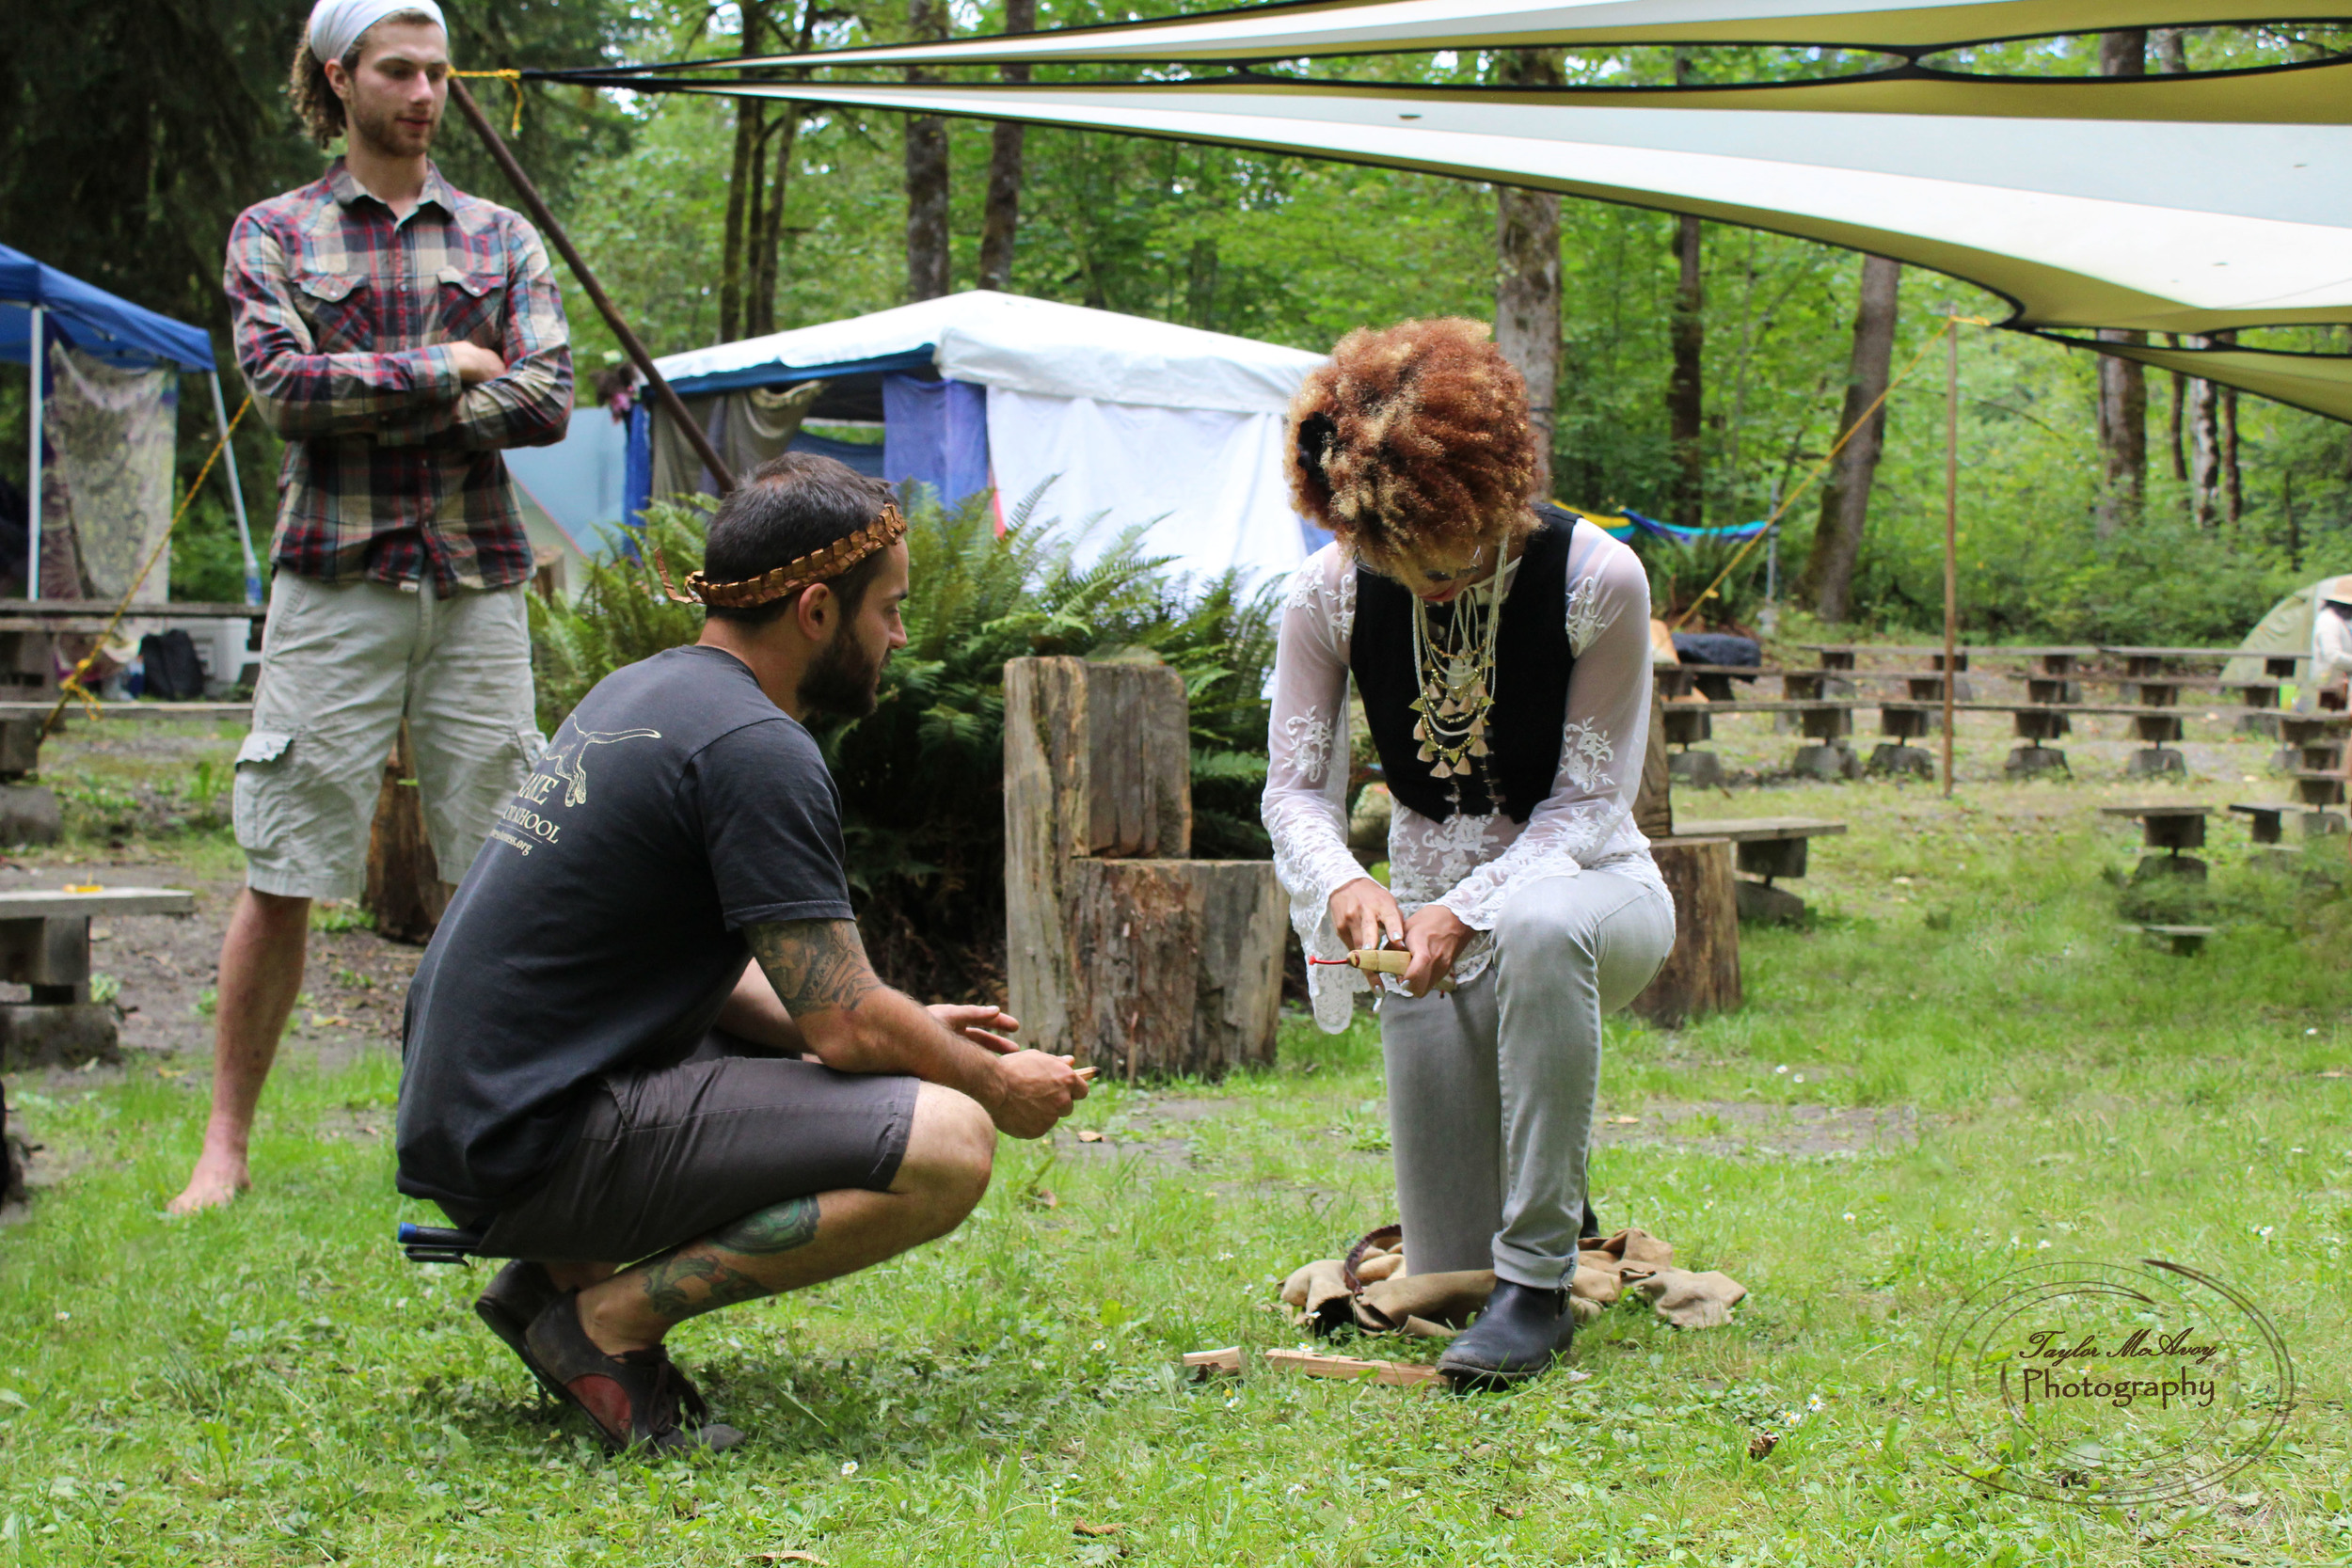 Instructors held a workshop to teach campers how to awaken fire out of natural materials of the forest.